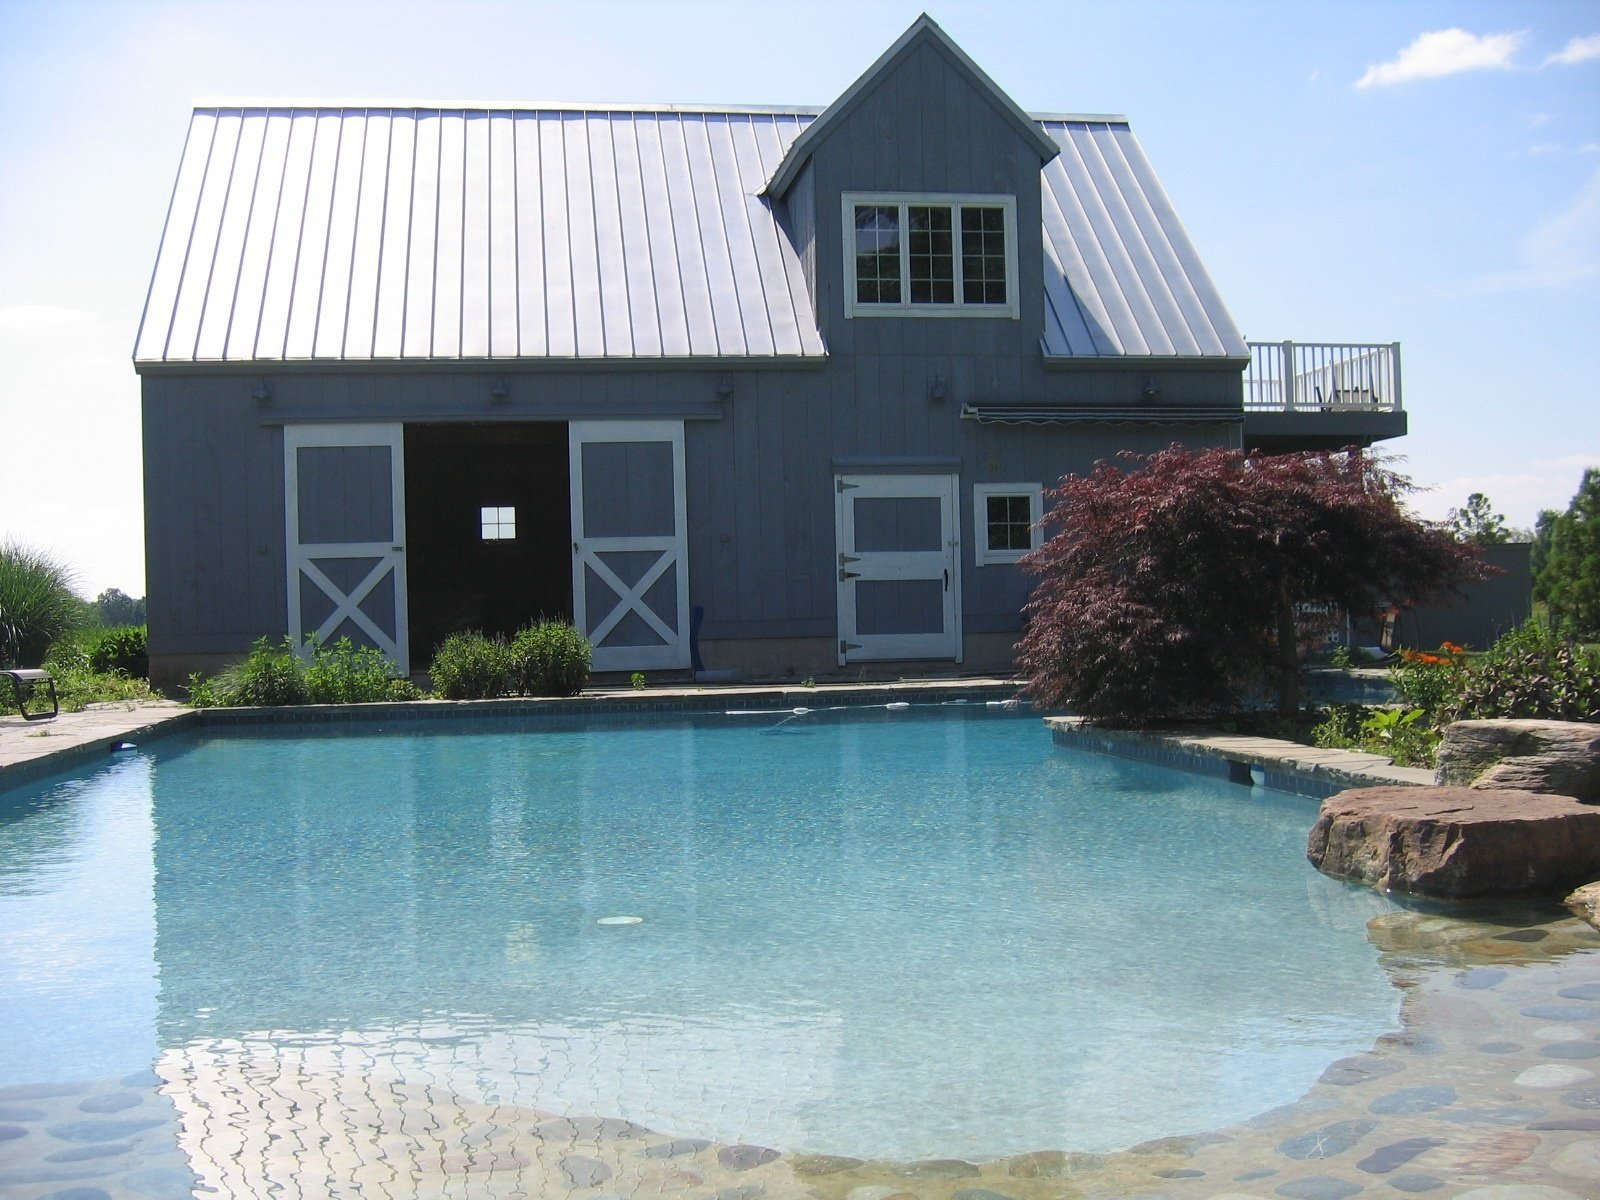 Through a collaboration with Ross Chapin Architects, the award-winning creator of GoodFit house plans, Shelter-Kit brings a range of kits for ready installation, such as this clever pool-side addition.  Photo 6 of 11 in 10 Prefab Barn Companies That Bring DIY to Home Building